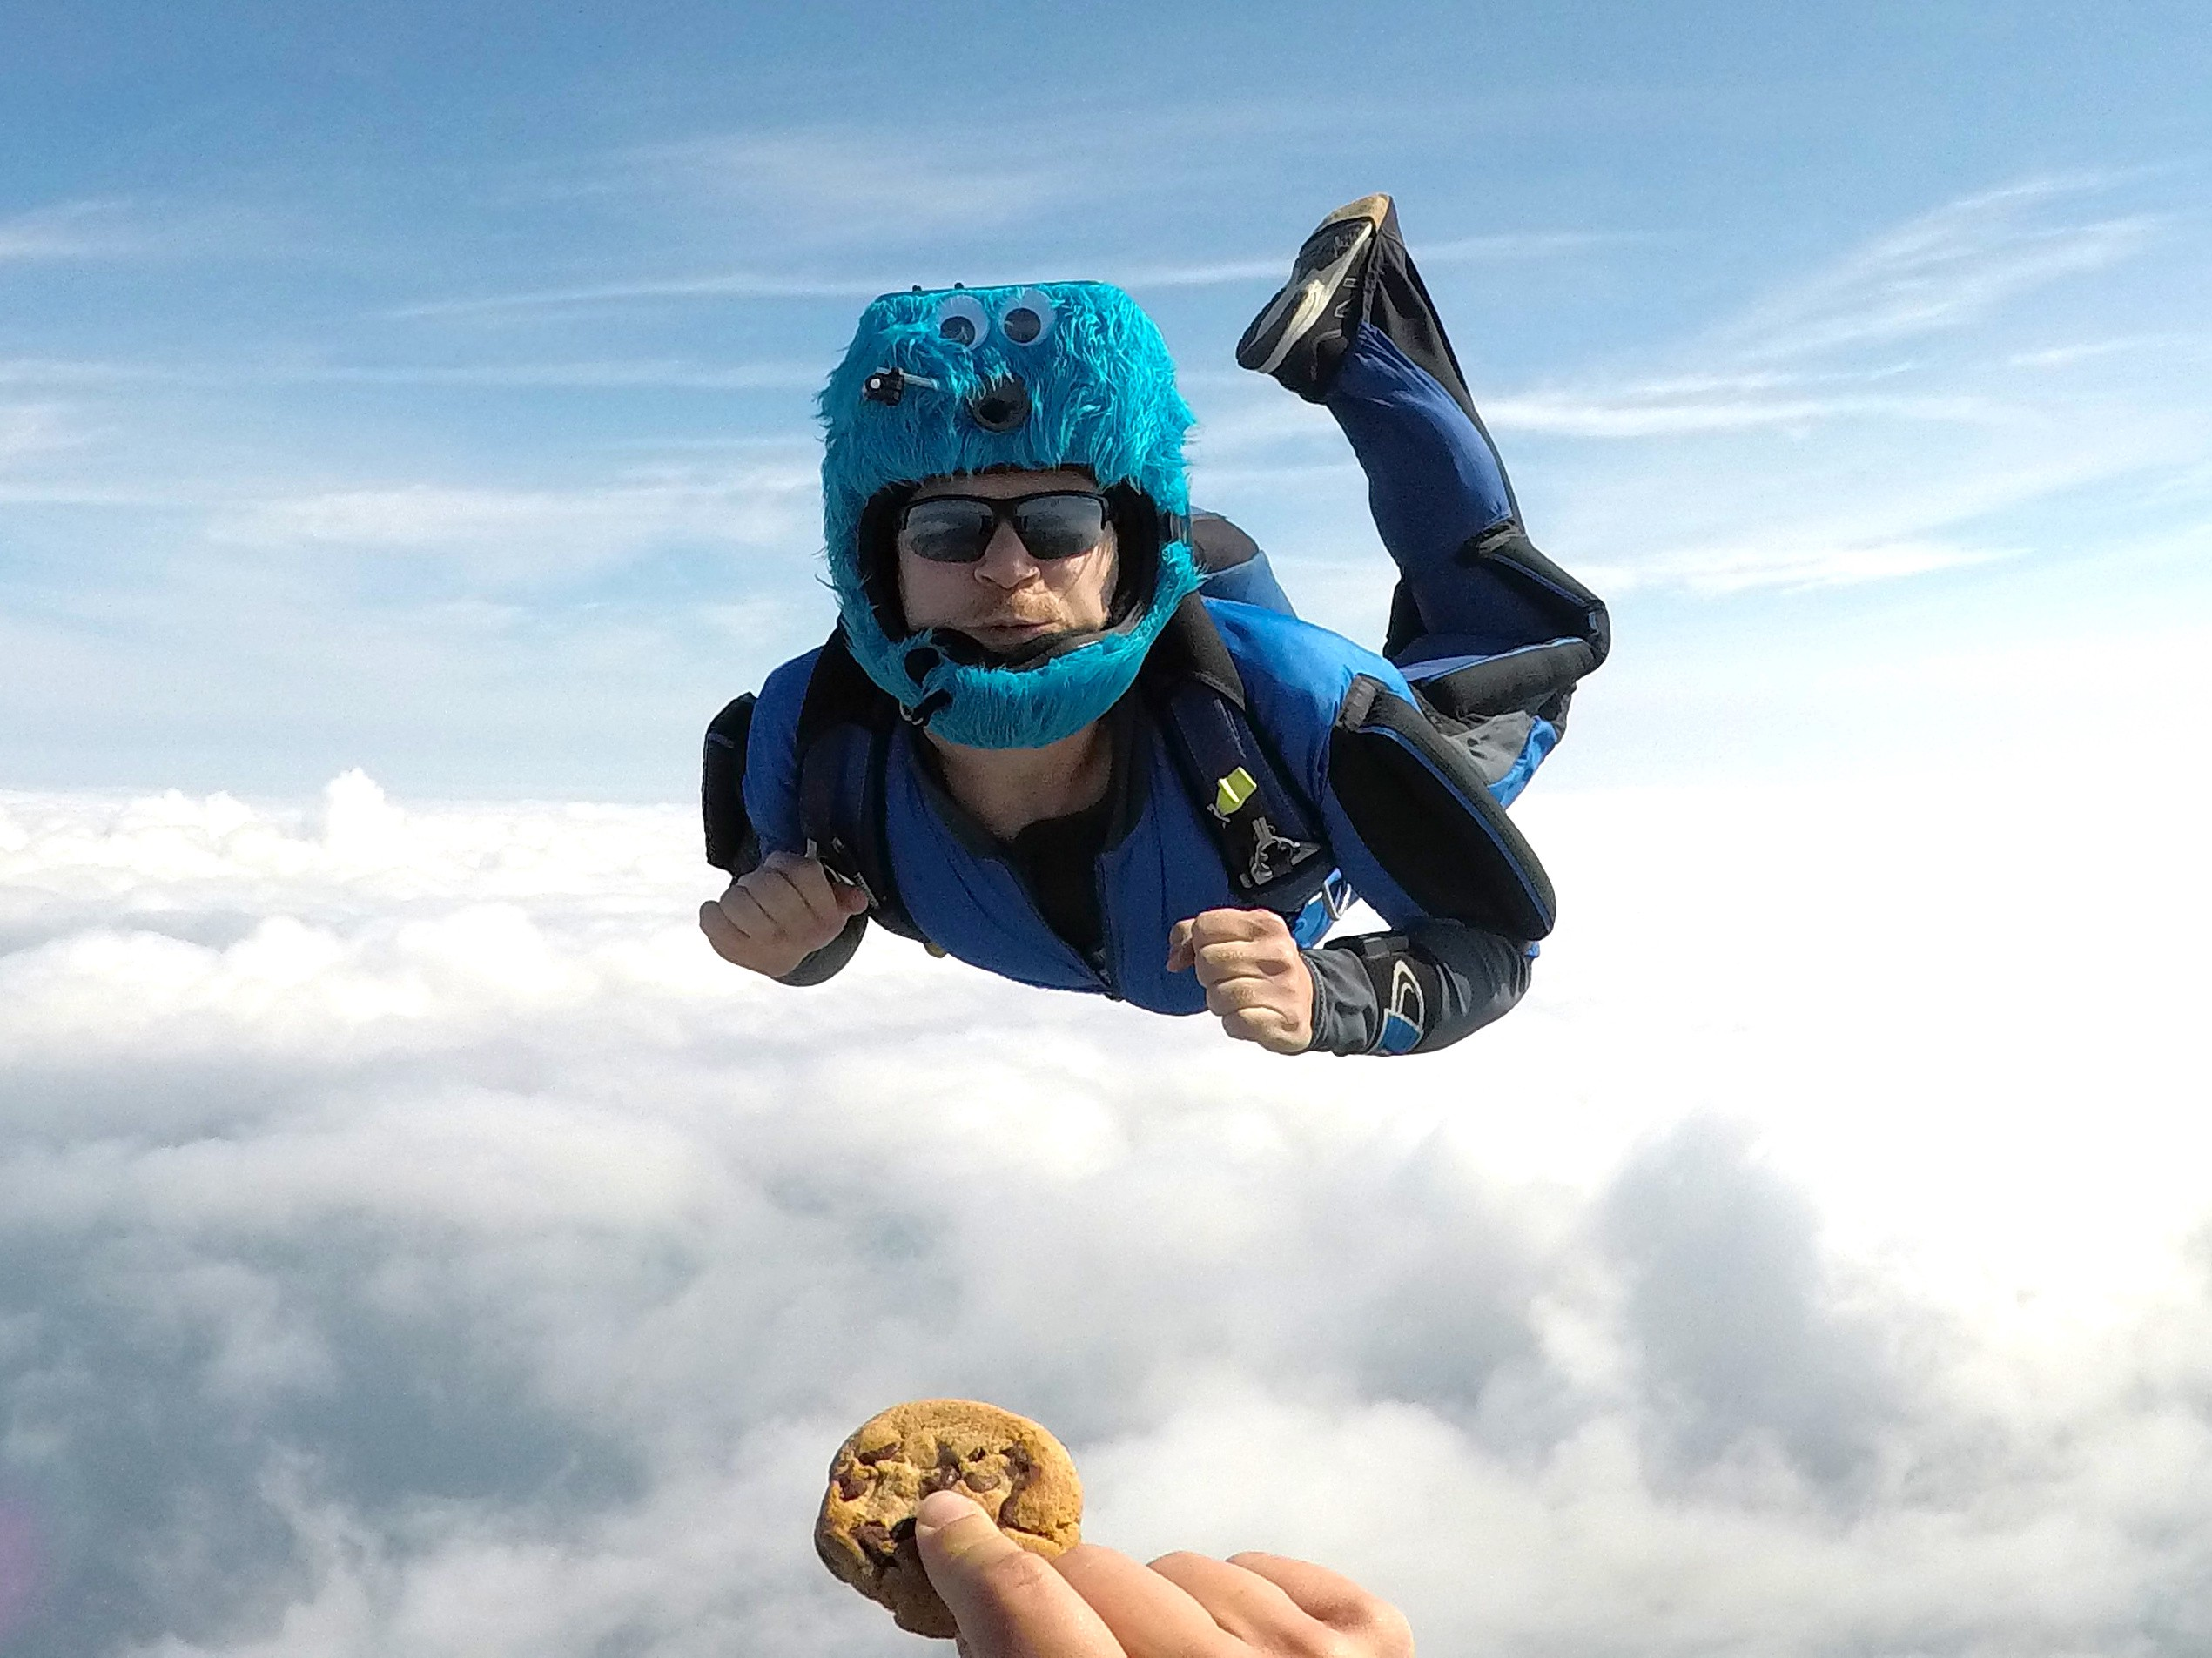 A photo of the author skydiving towards a cookie.